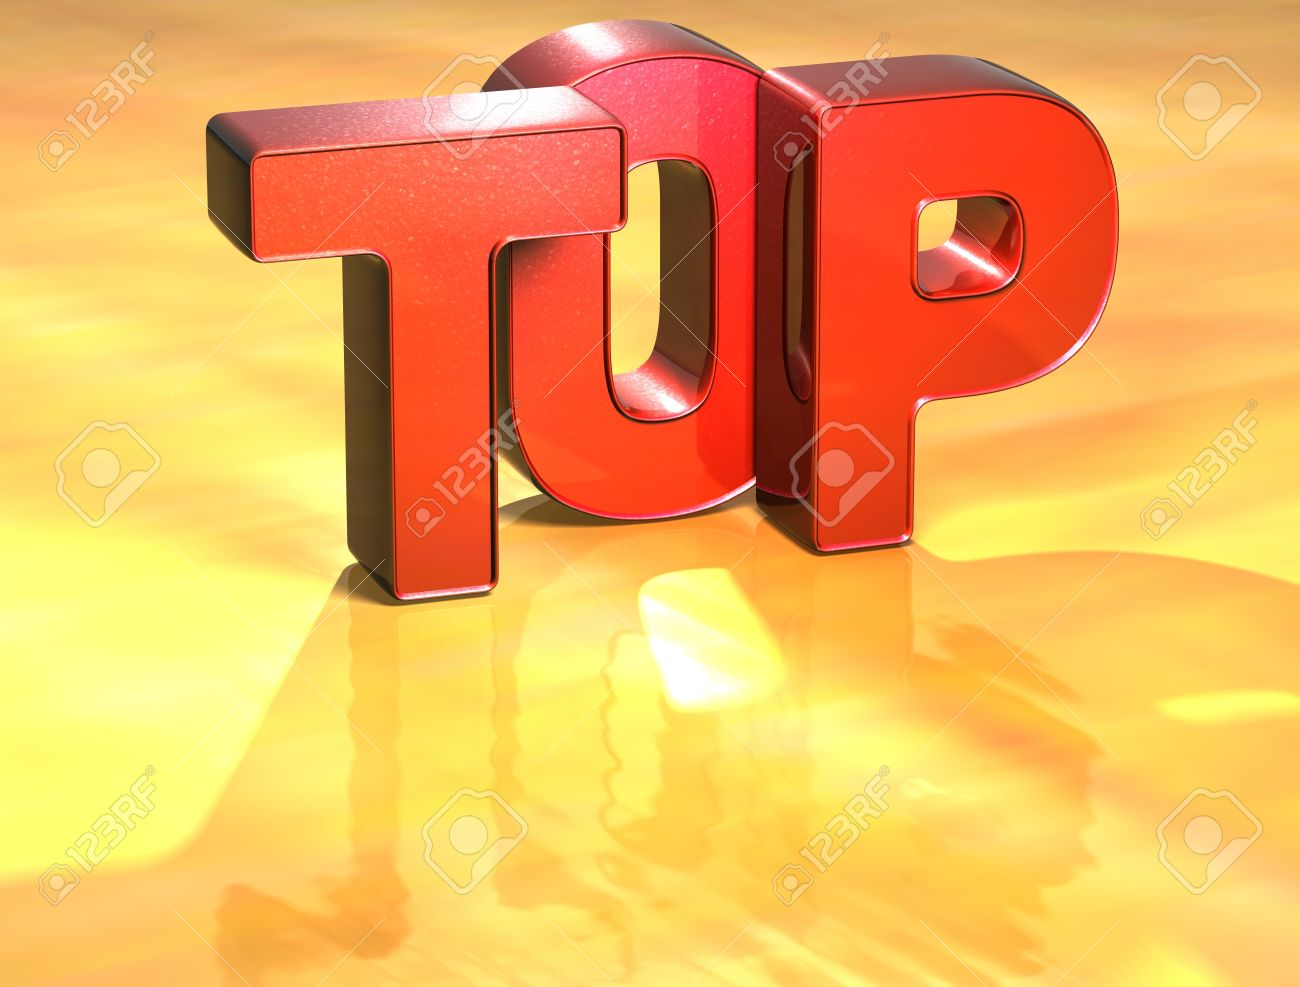 Word Top on yellow background (high resolution 3D image) Stock Photo - 13963364